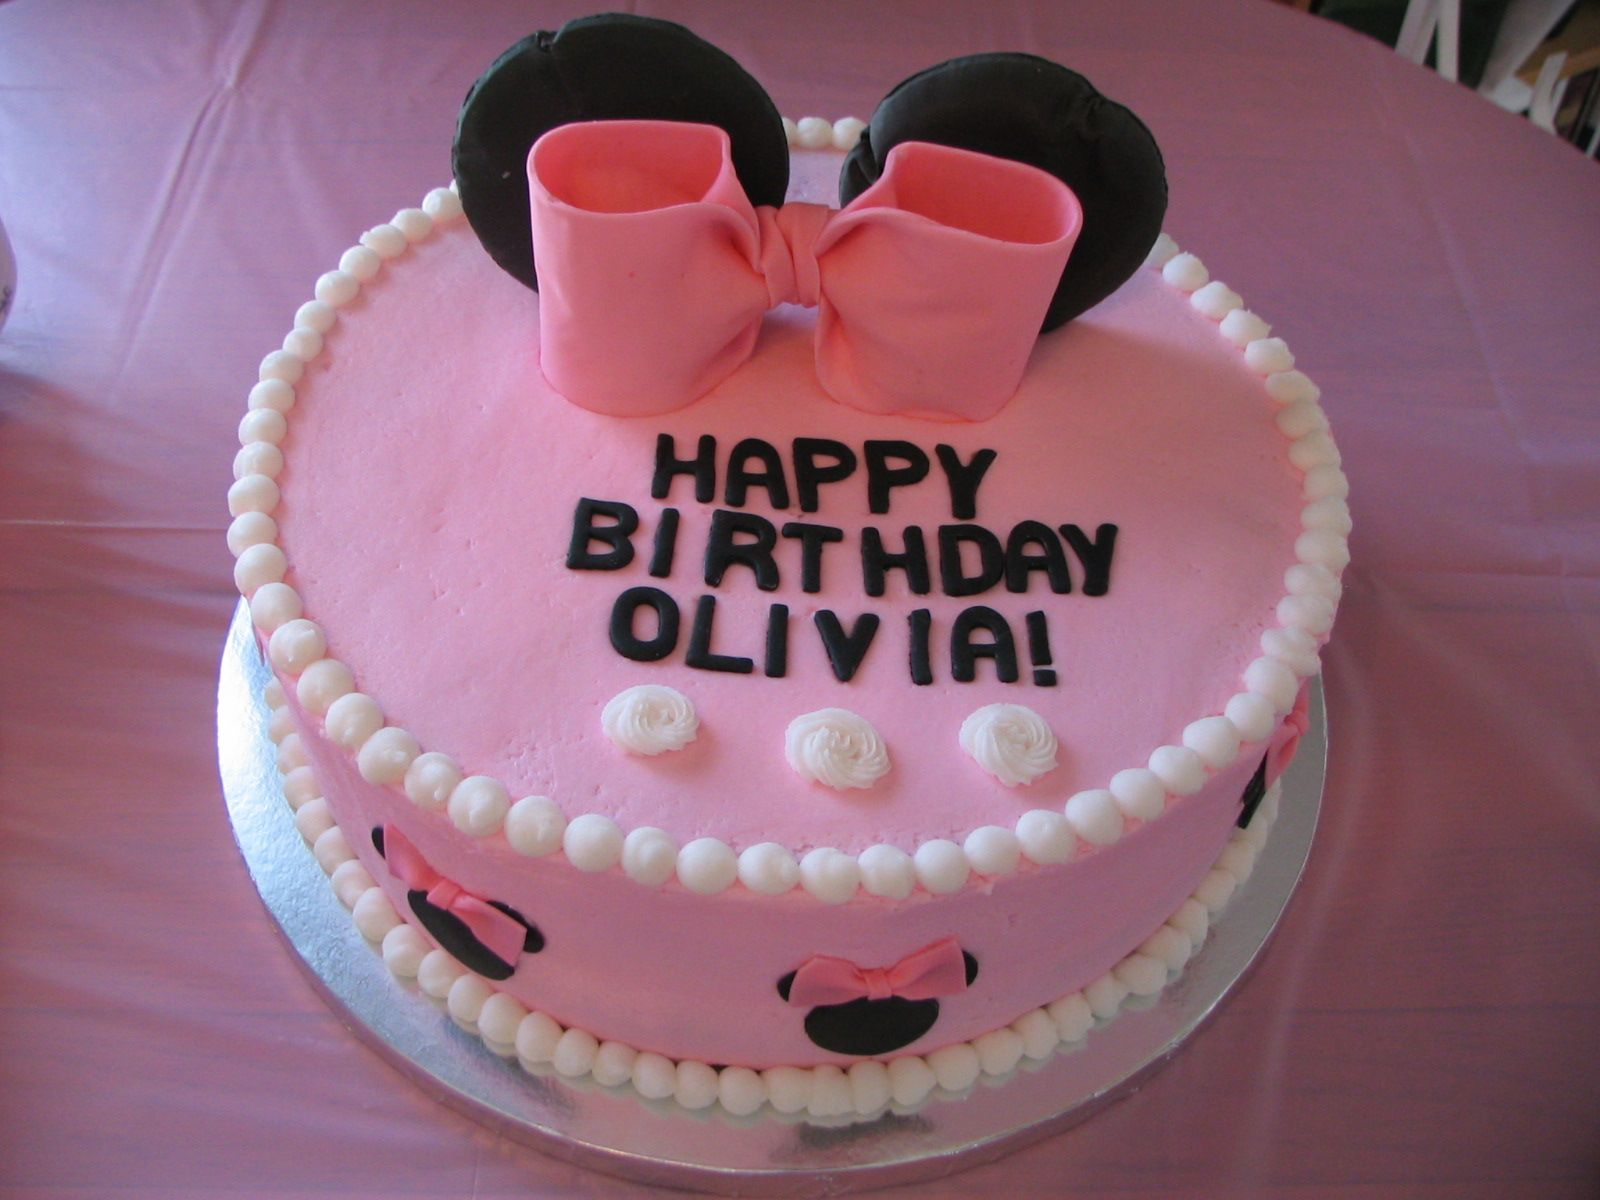 Happy Birthday Olivia Wishes Cake Images Quotes Sms Wishes